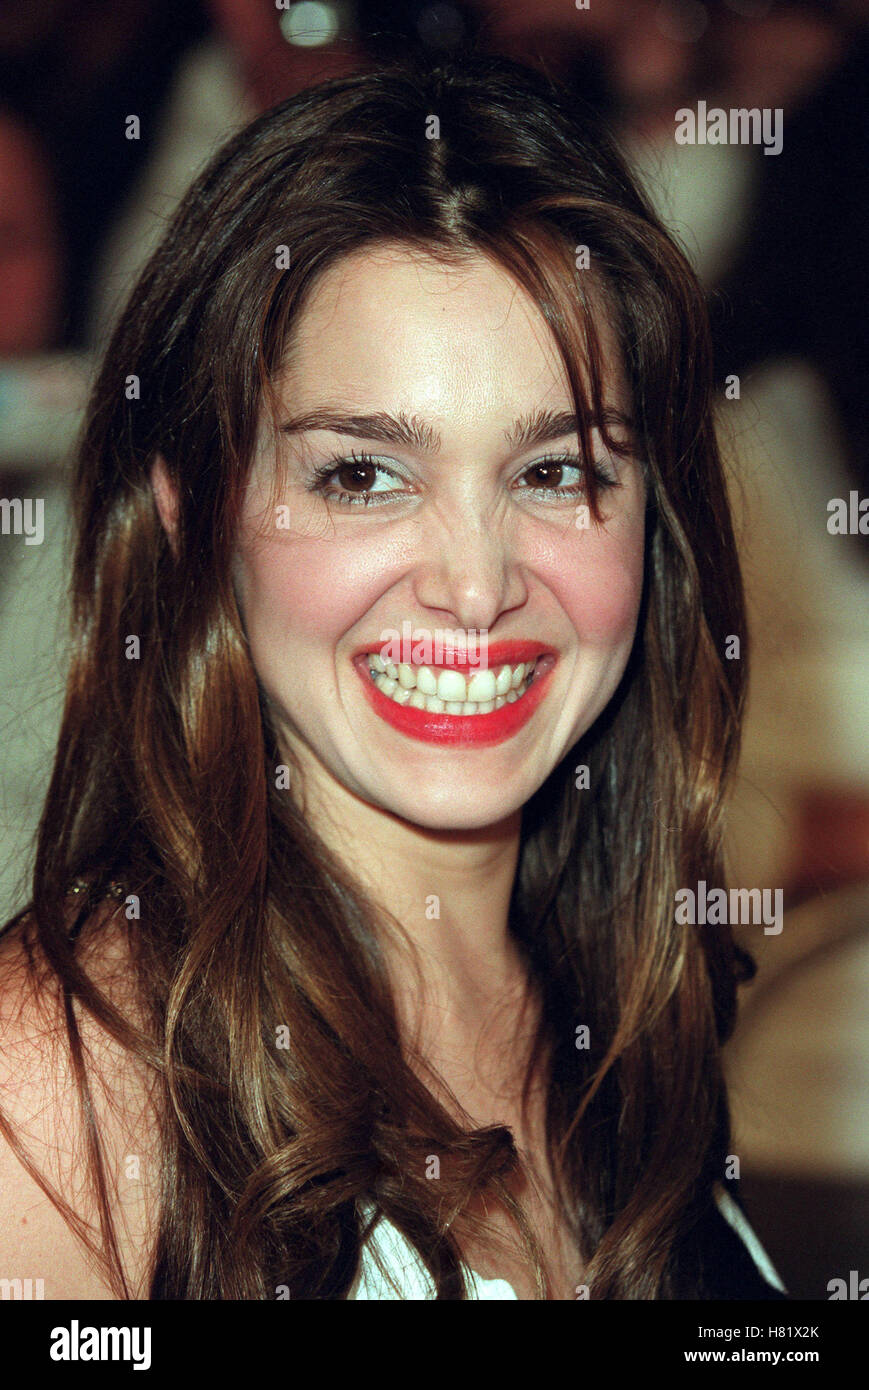 GINA PHILIPS MUHAMMAD ALI'S 60TH BIRTHDAY KODAK THEATRE LA USA 12 January 2002 - Stock Image